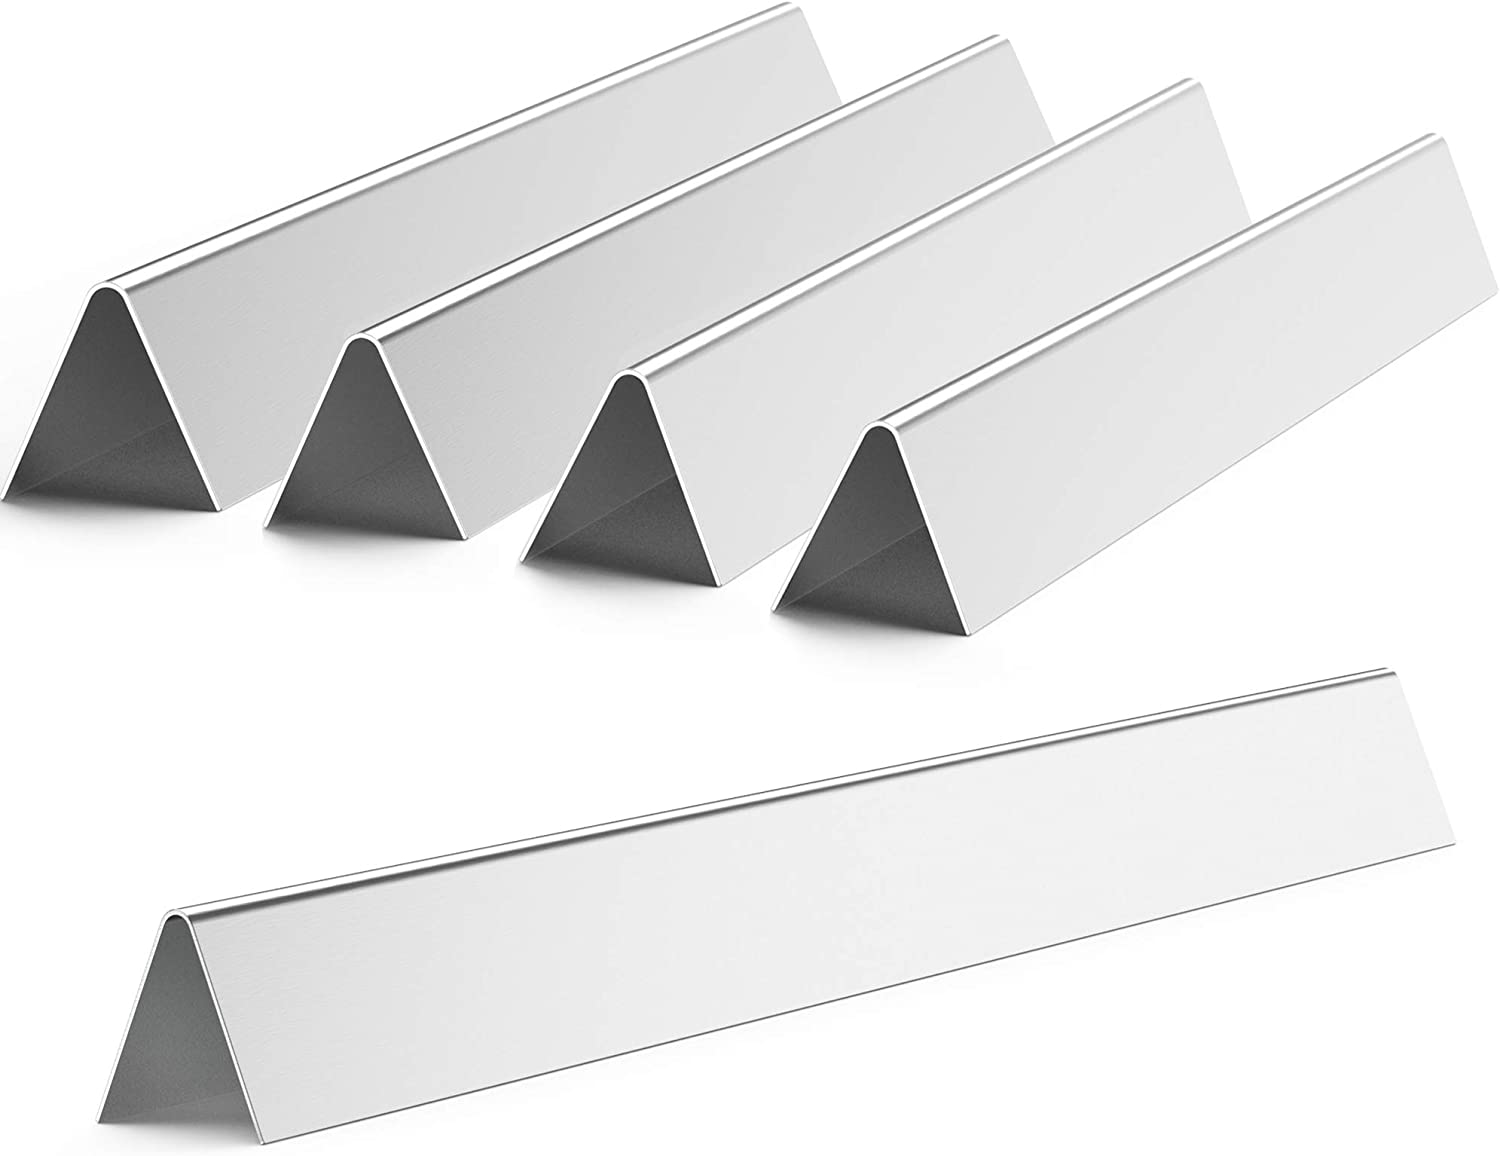 21 1//2 X1 3//4 Inches onlyfire Stainless Steel Gas Grill Replacement Flavorizer Bars//Heat Plate//Heat Shield for Weber Genesis and Spirit Grills Models Set of 5